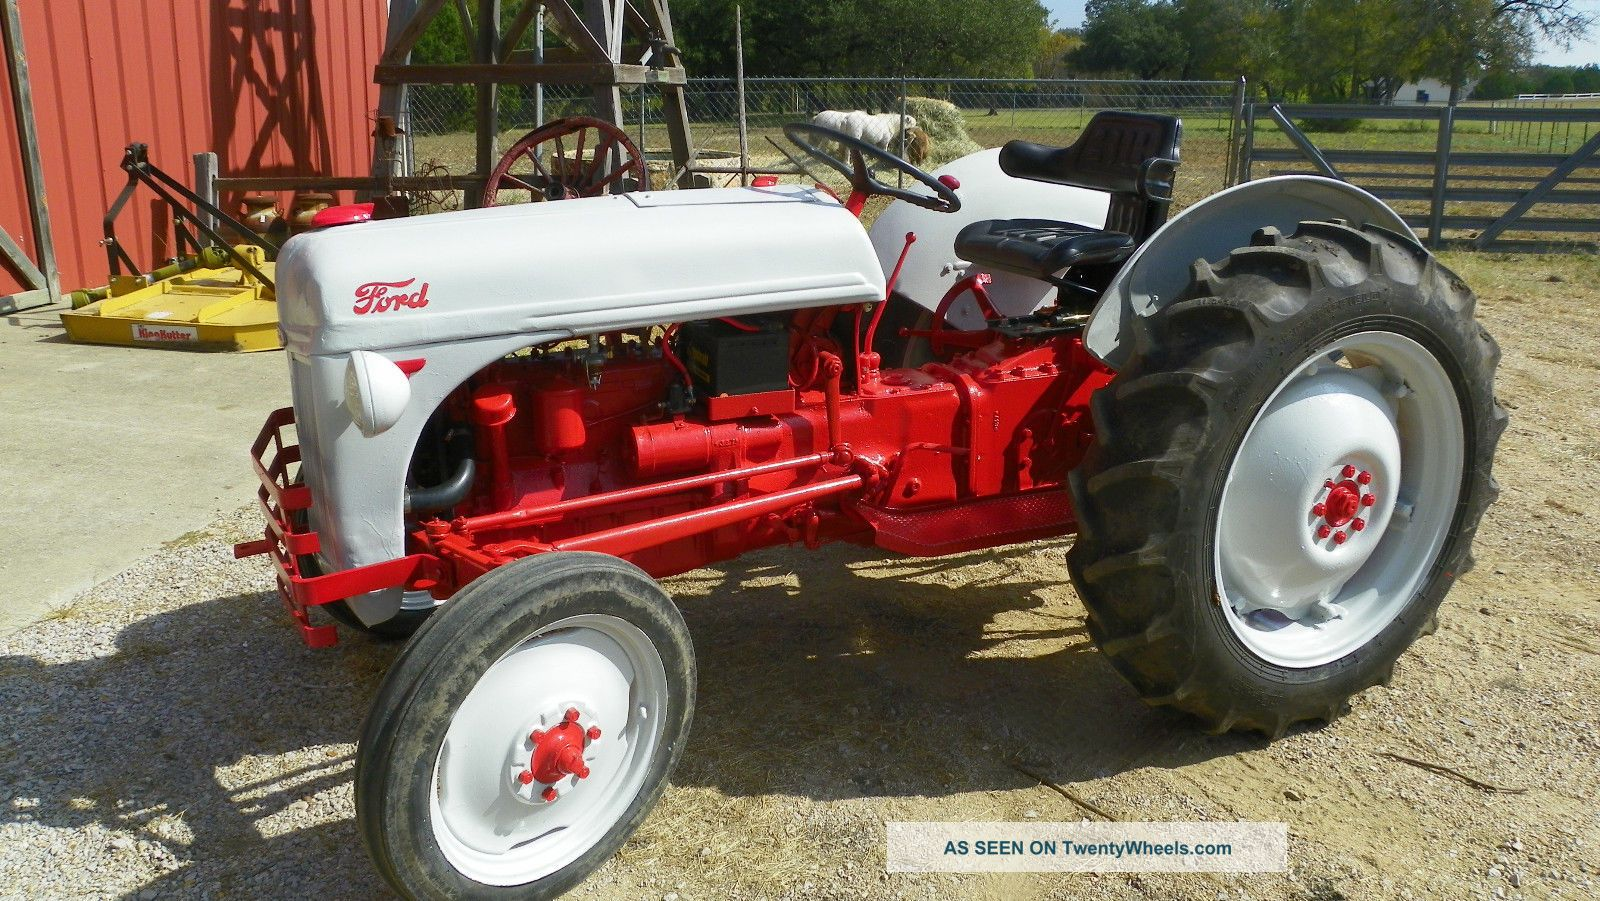 Ford 8n Tractor Dimensions : Ford n tractor specs